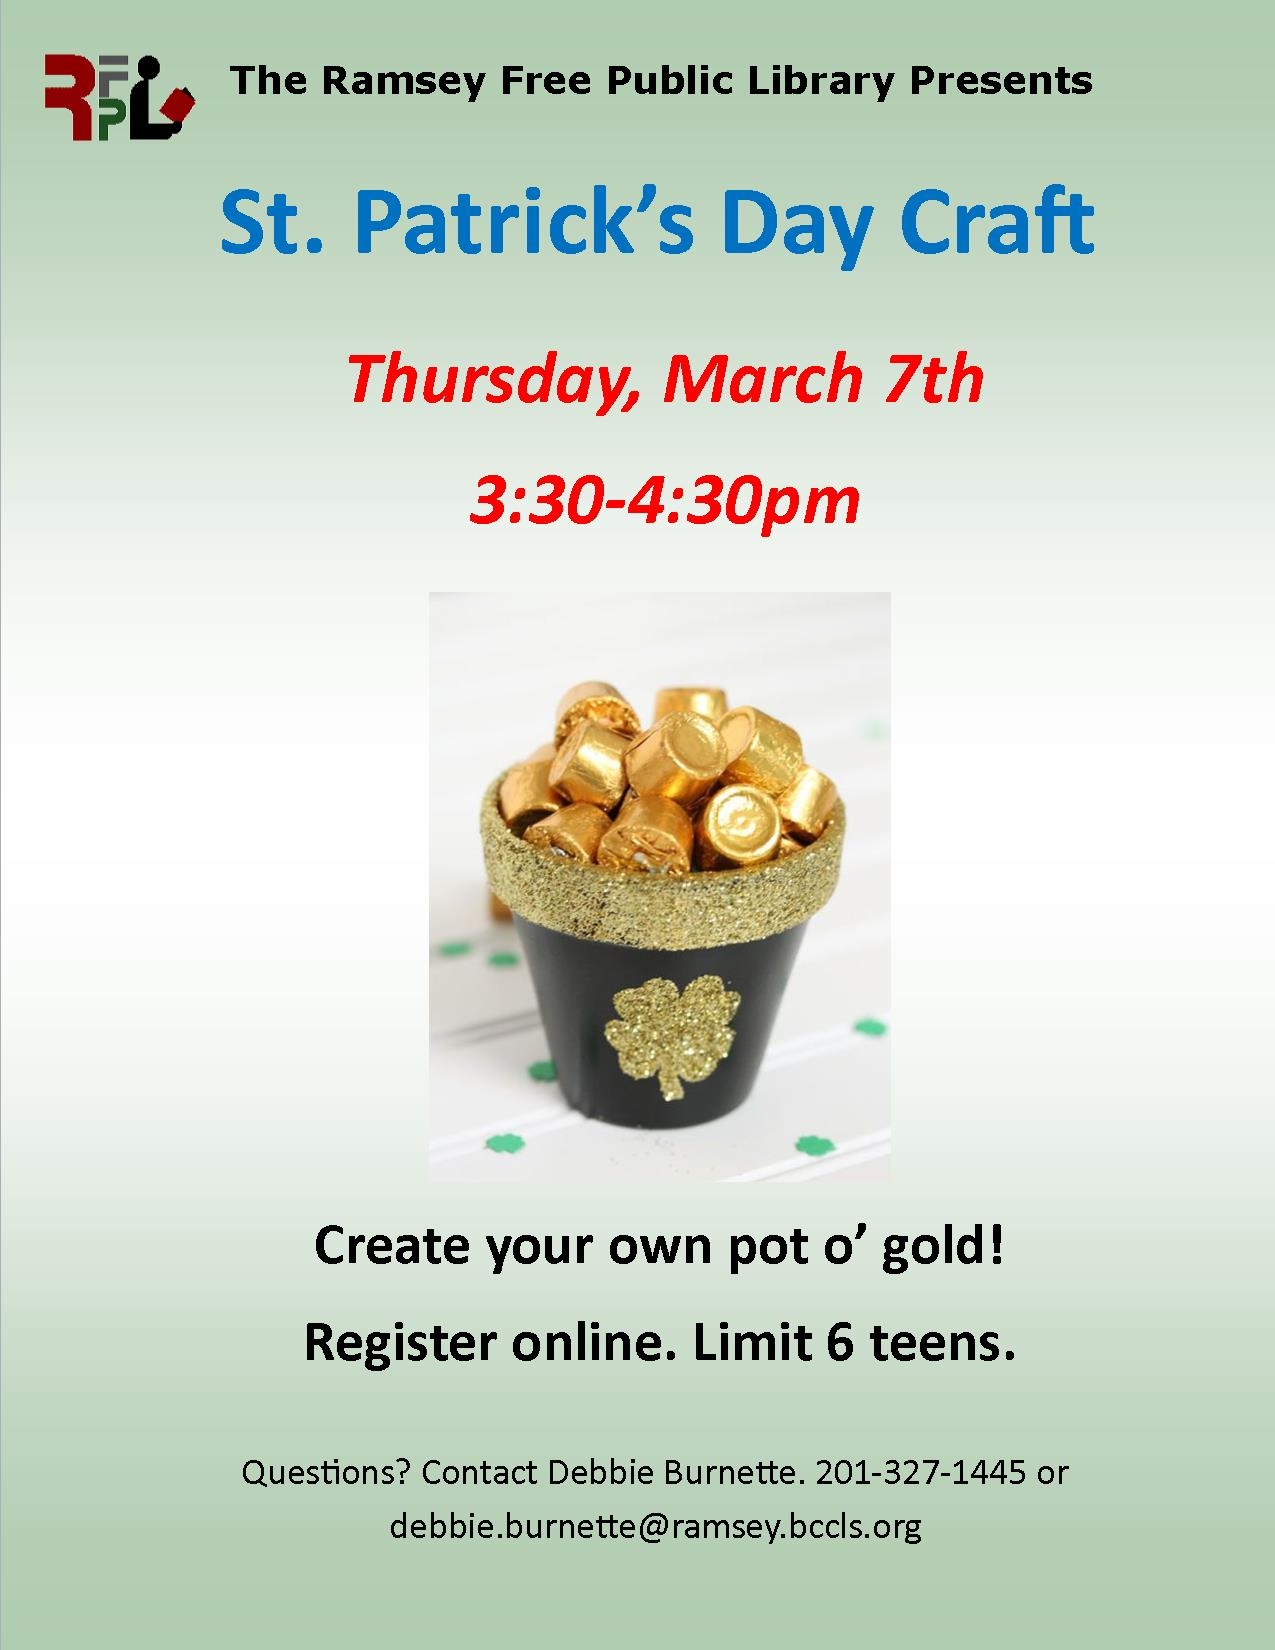 Teen St. Patrick's Day Craft